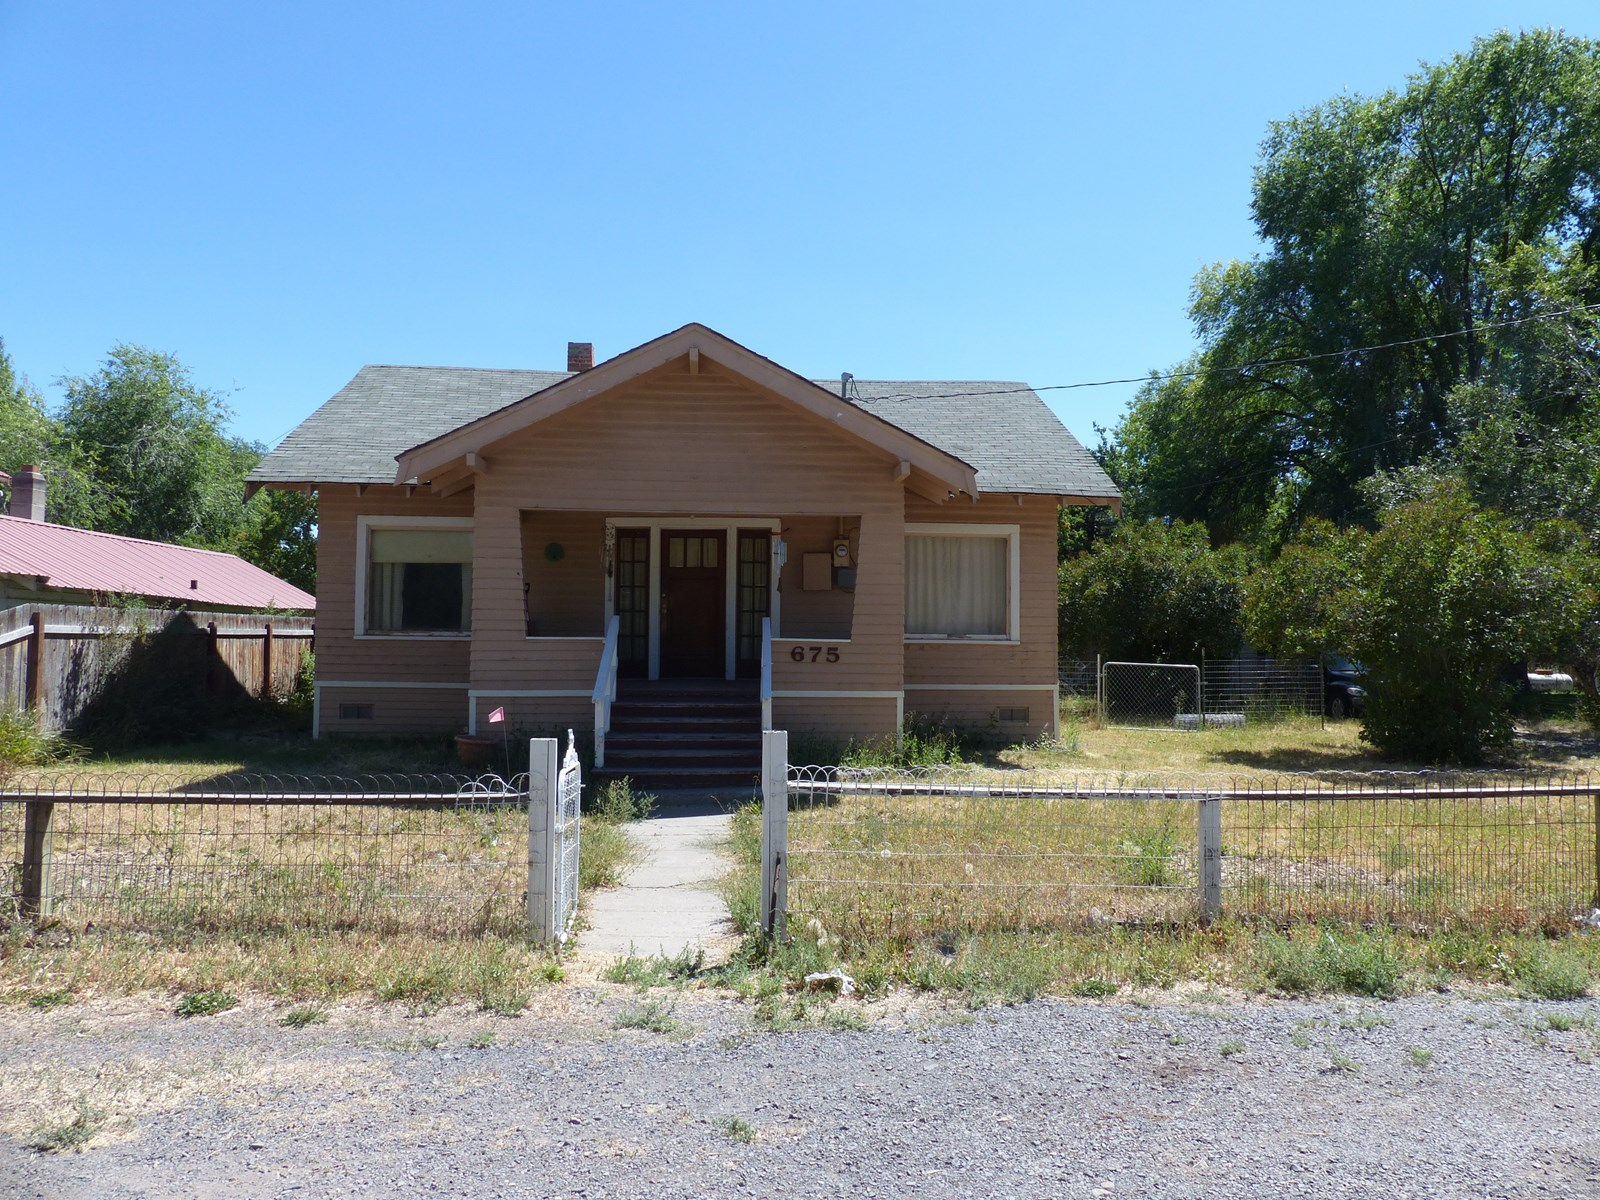 CHARMING 2 BDRM HOME FOR SALE IN BURNS OR